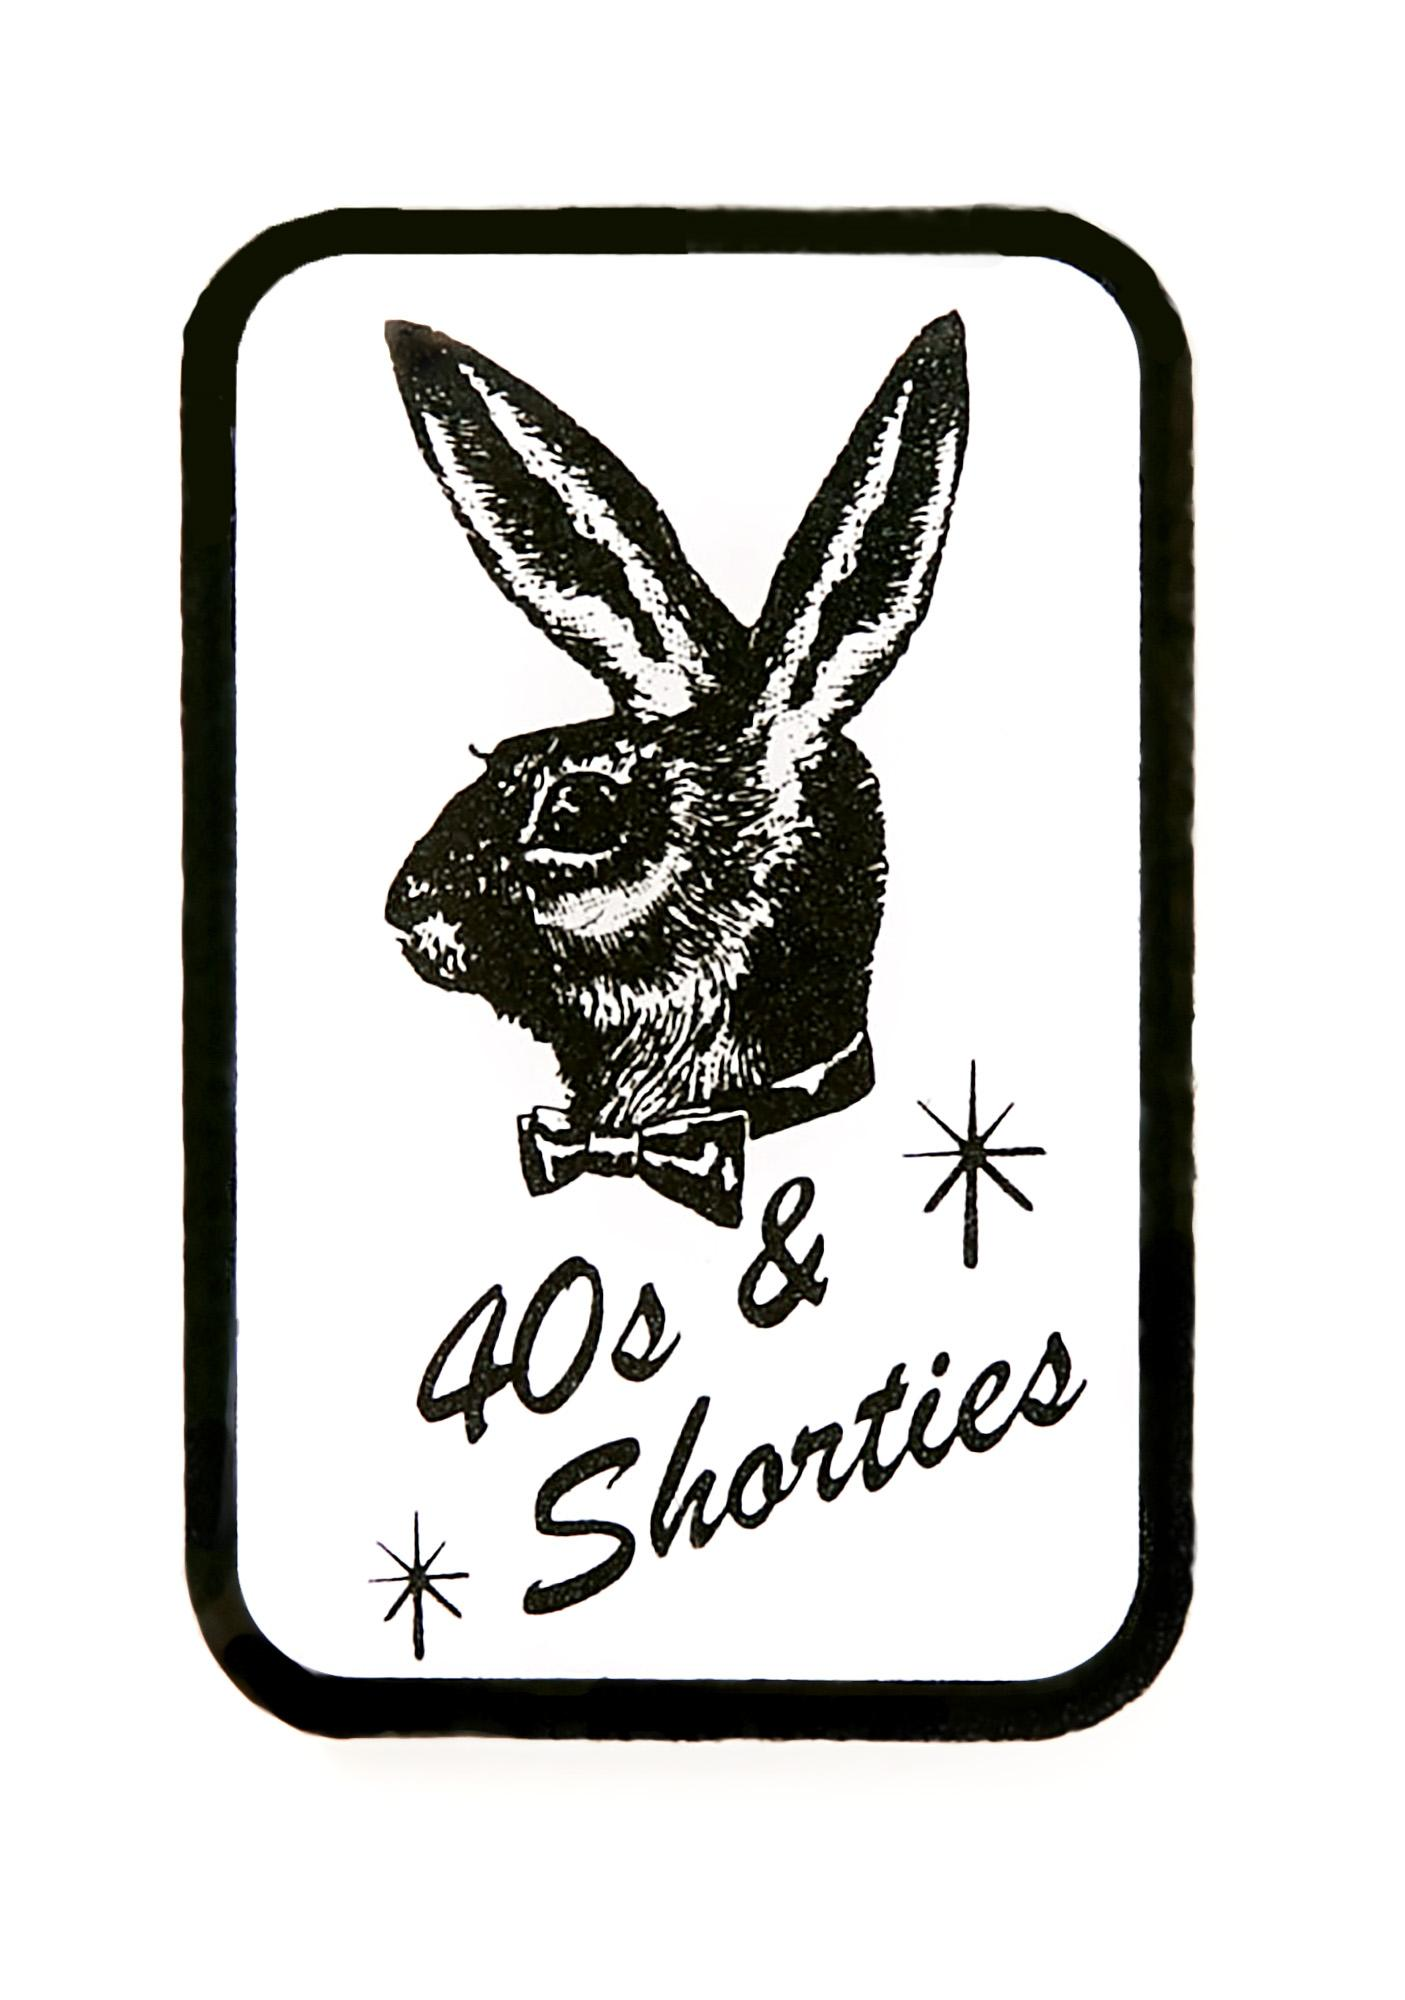 40s & Shorties Players Ball Pin